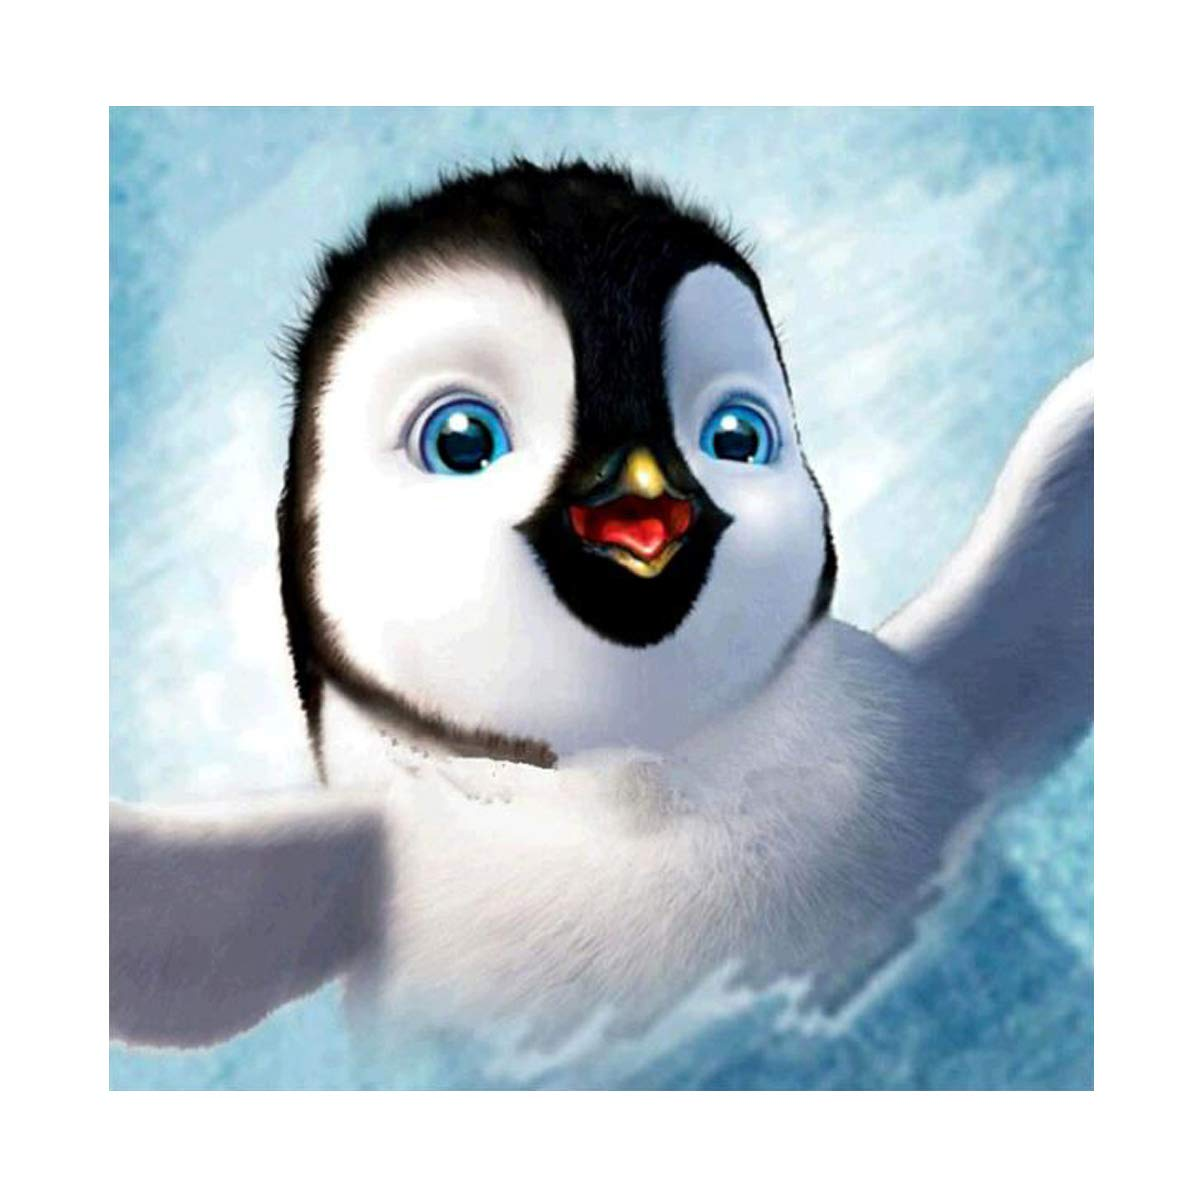 DIY 5D Diamond Painting by Number Kits Full Round Drill Rhinestone Embroidery Cross Stitch Picture Art Craft Home Wall Decor Penguin 12x12In MXJSUA